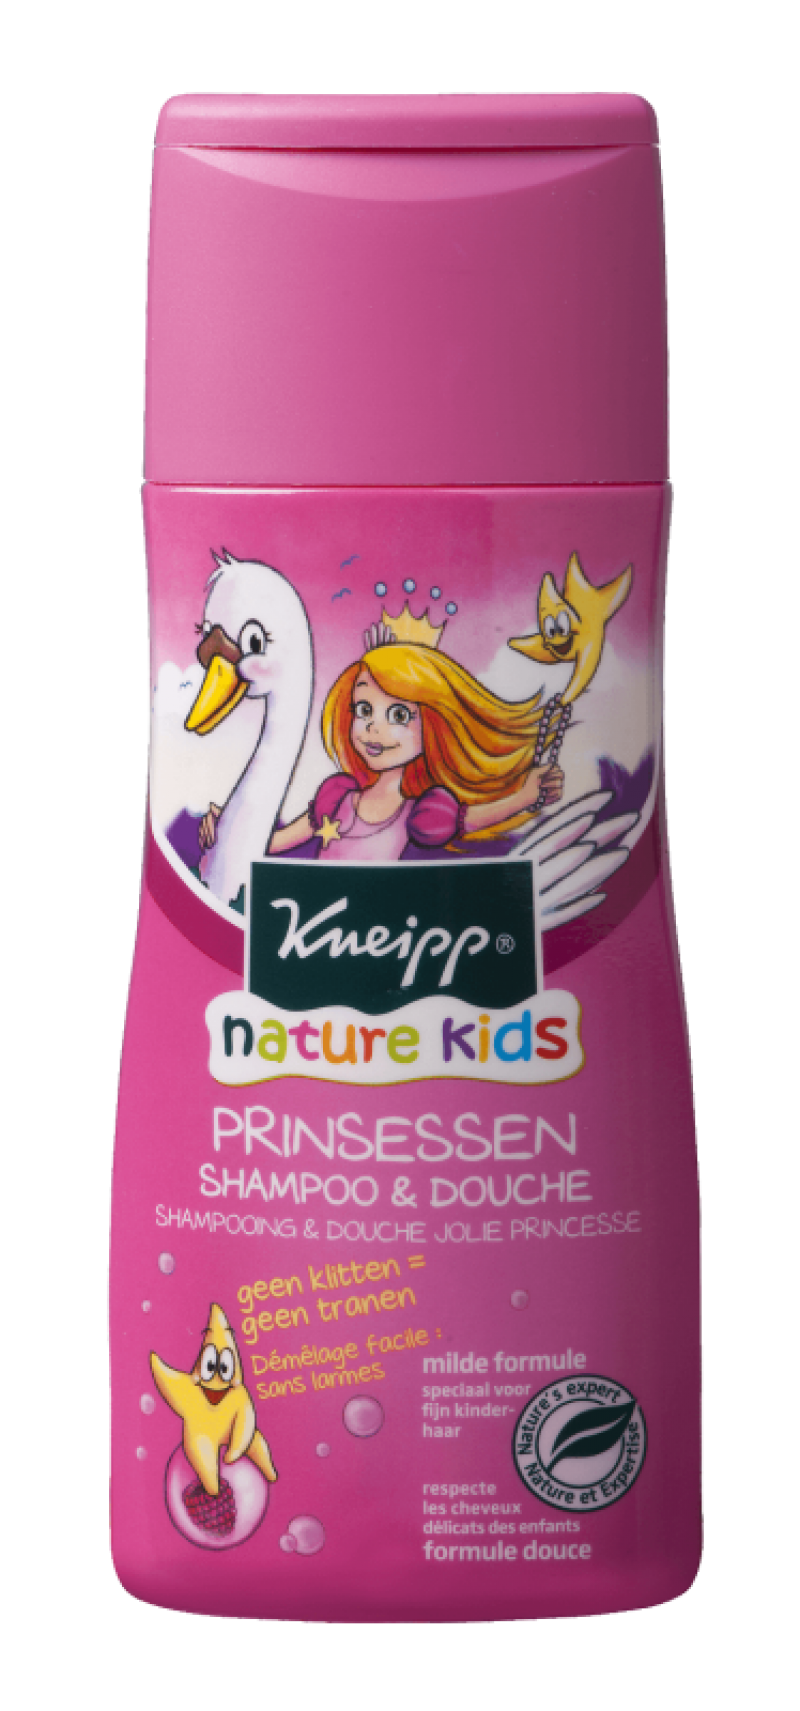 Nature kids - Prinsessen 200ml